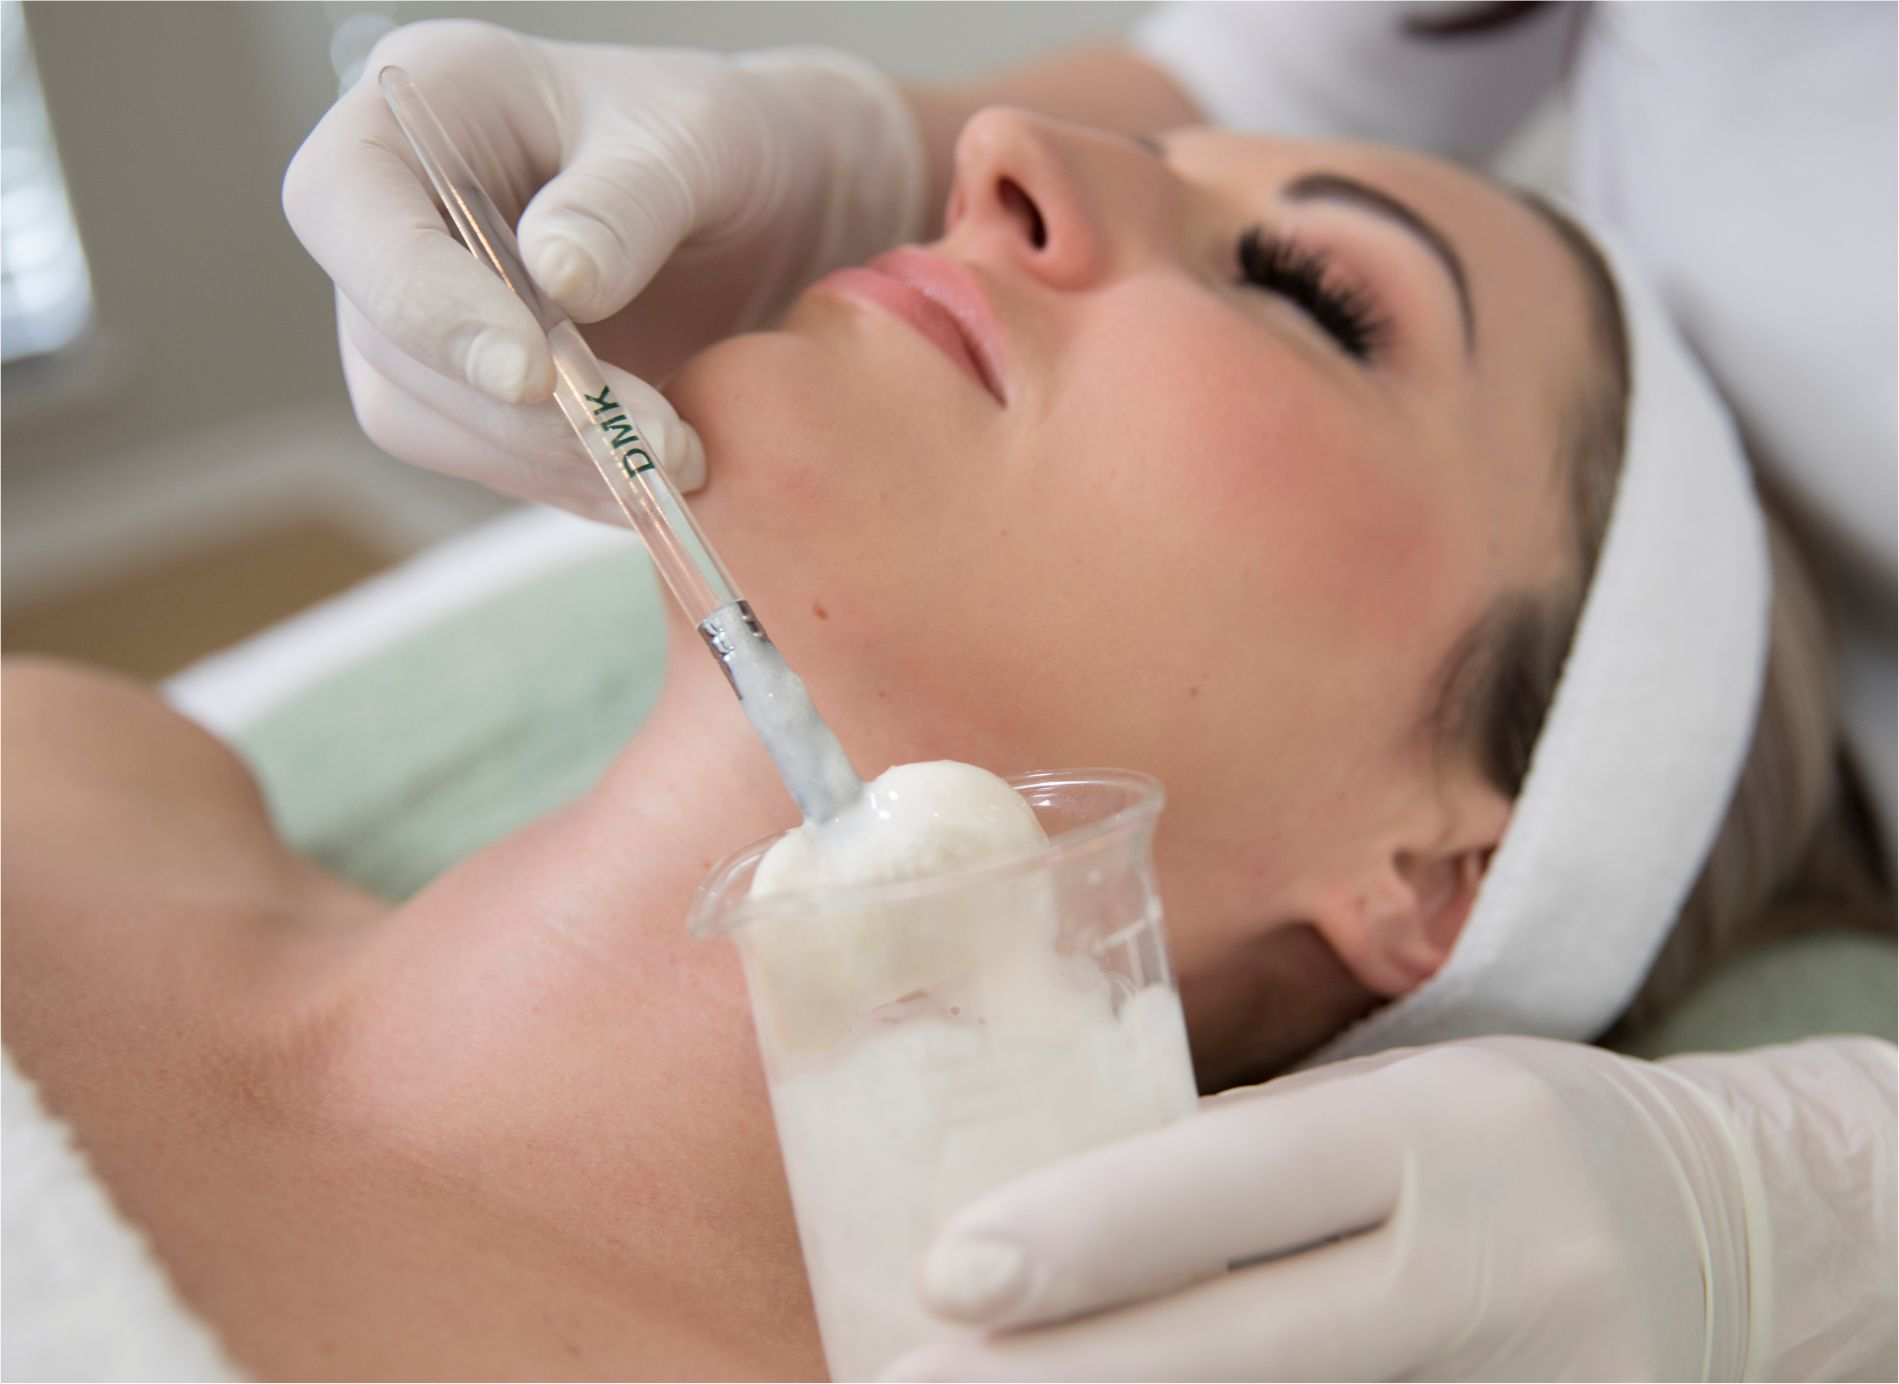 DMK Paramedical Skin Procedures